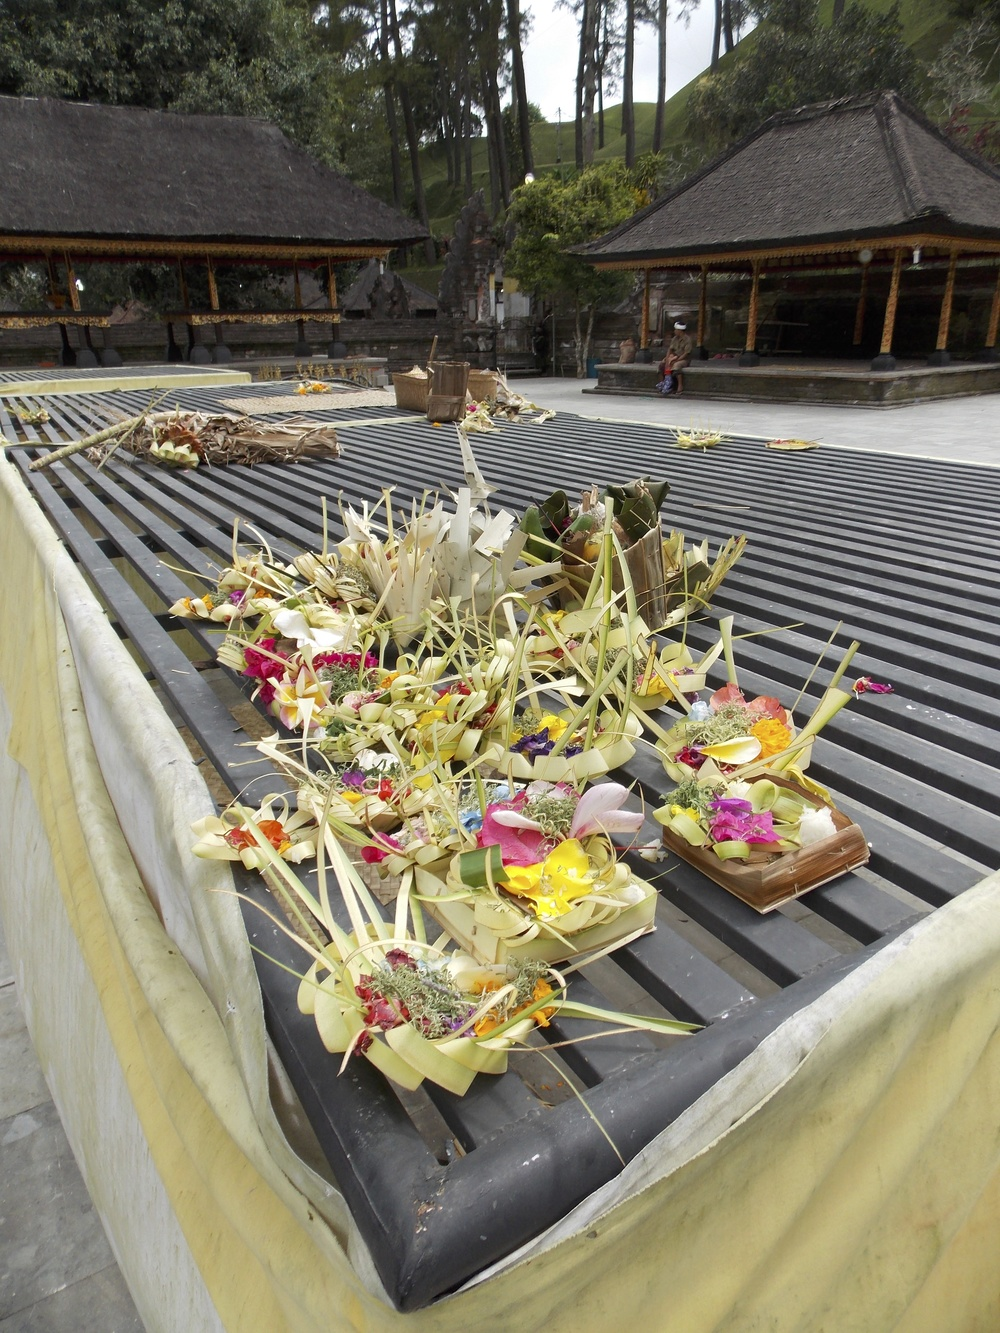 Local Offerings at Tirta Empul Temple